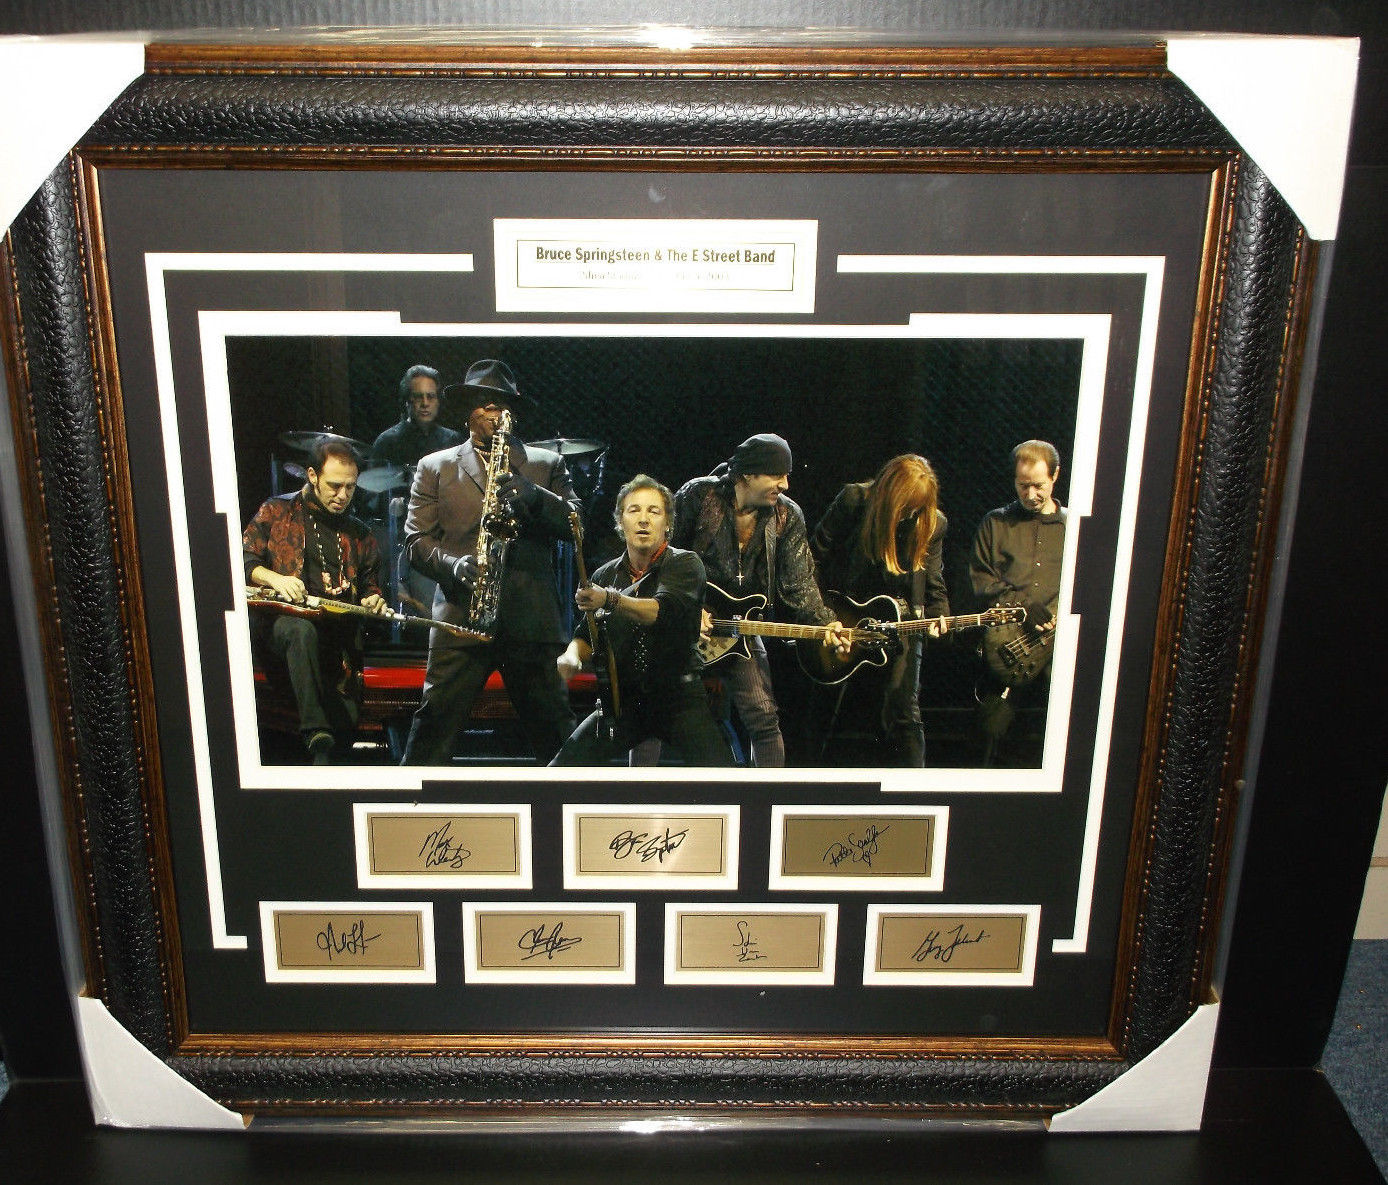 Bruce Springsteen and the E Street Band 16x20 w/ laser engraved signatures